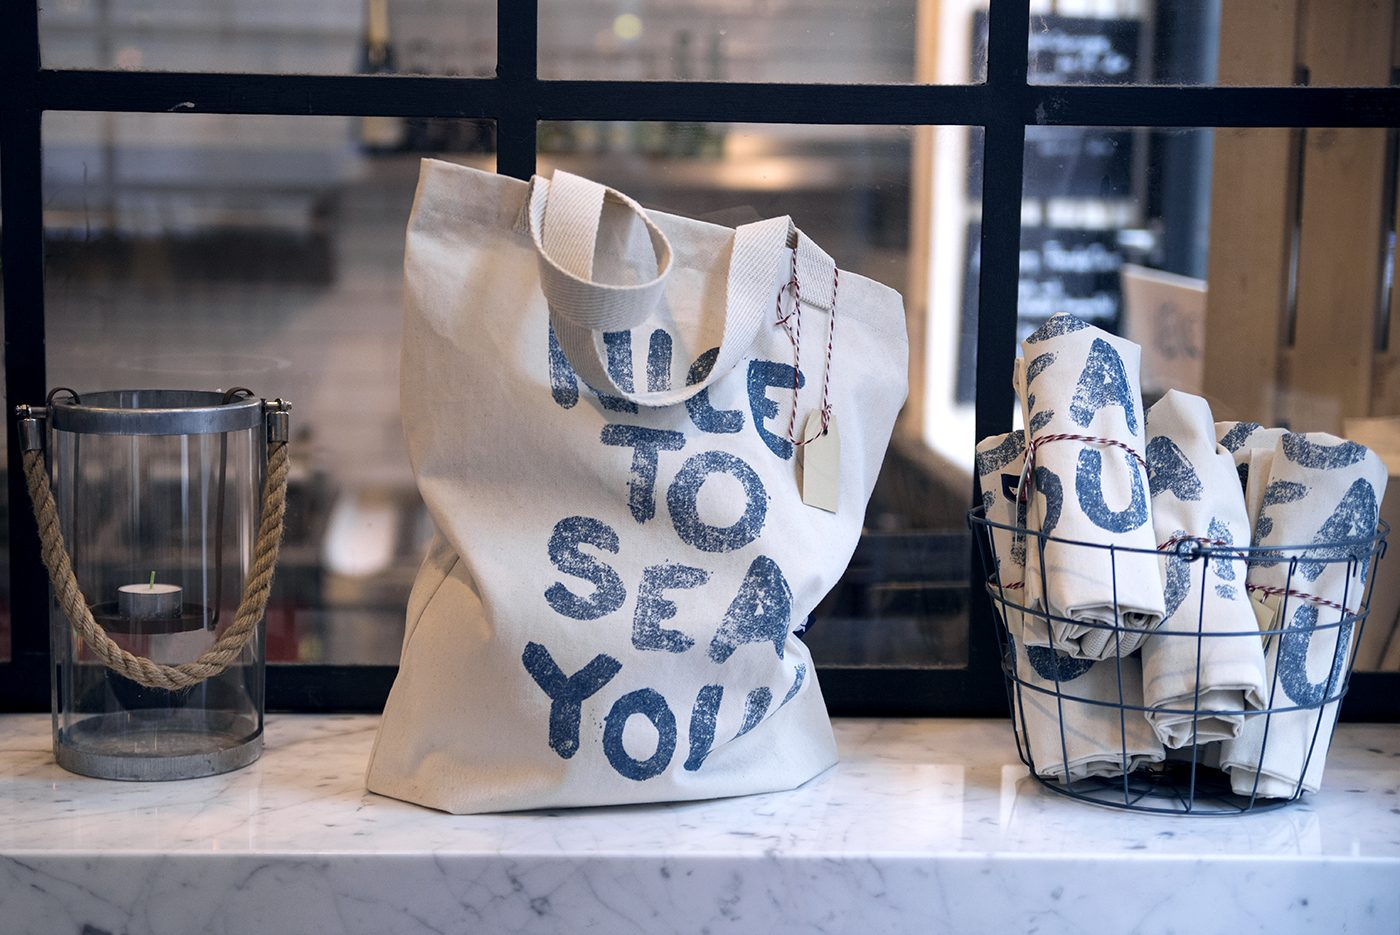 Seaside Branding by upstruct and muskat - 01